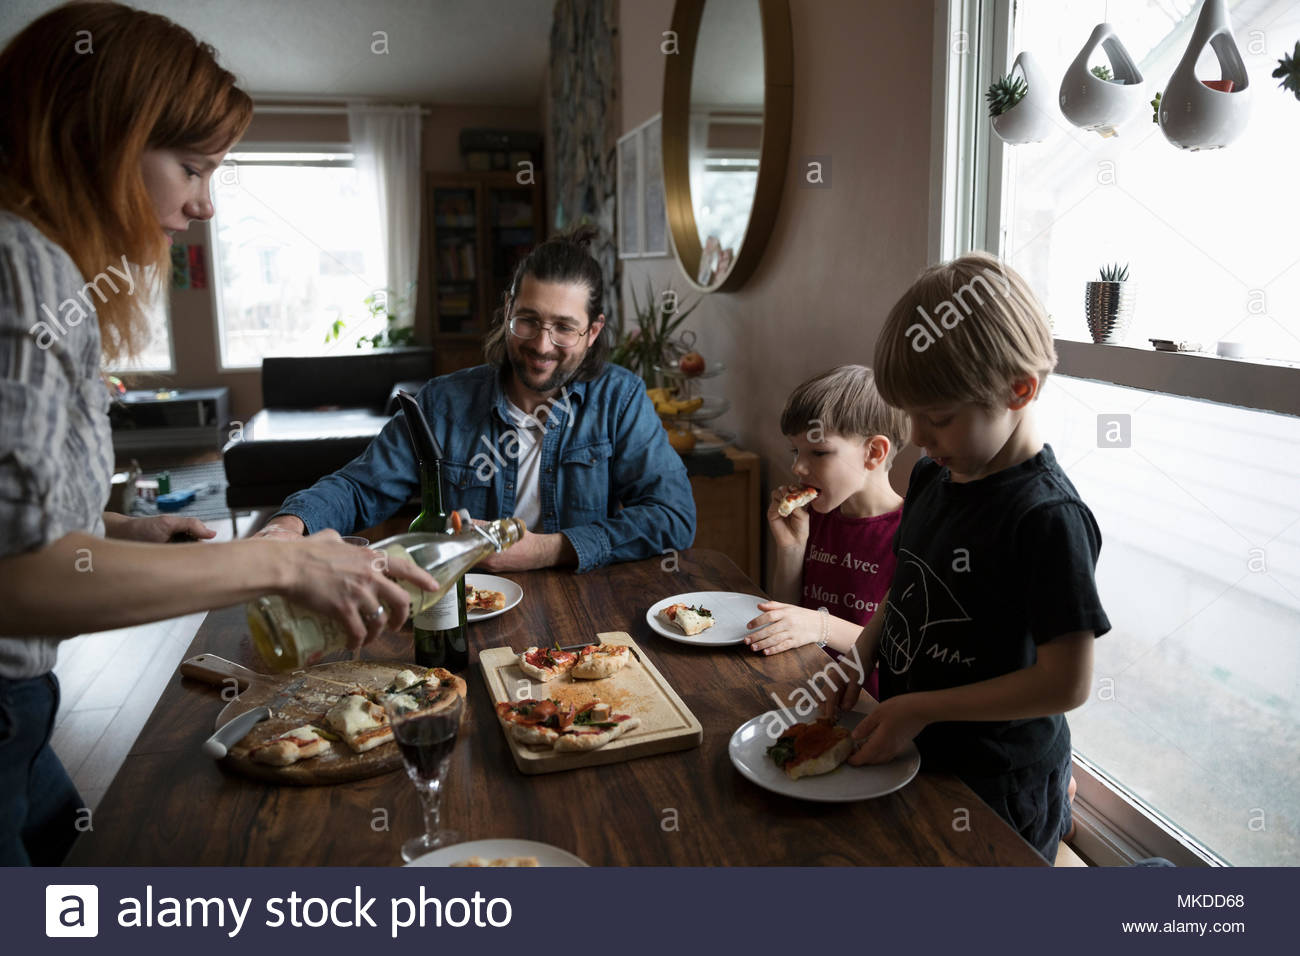 Family eating homemade pizza at dining table - Stock Image